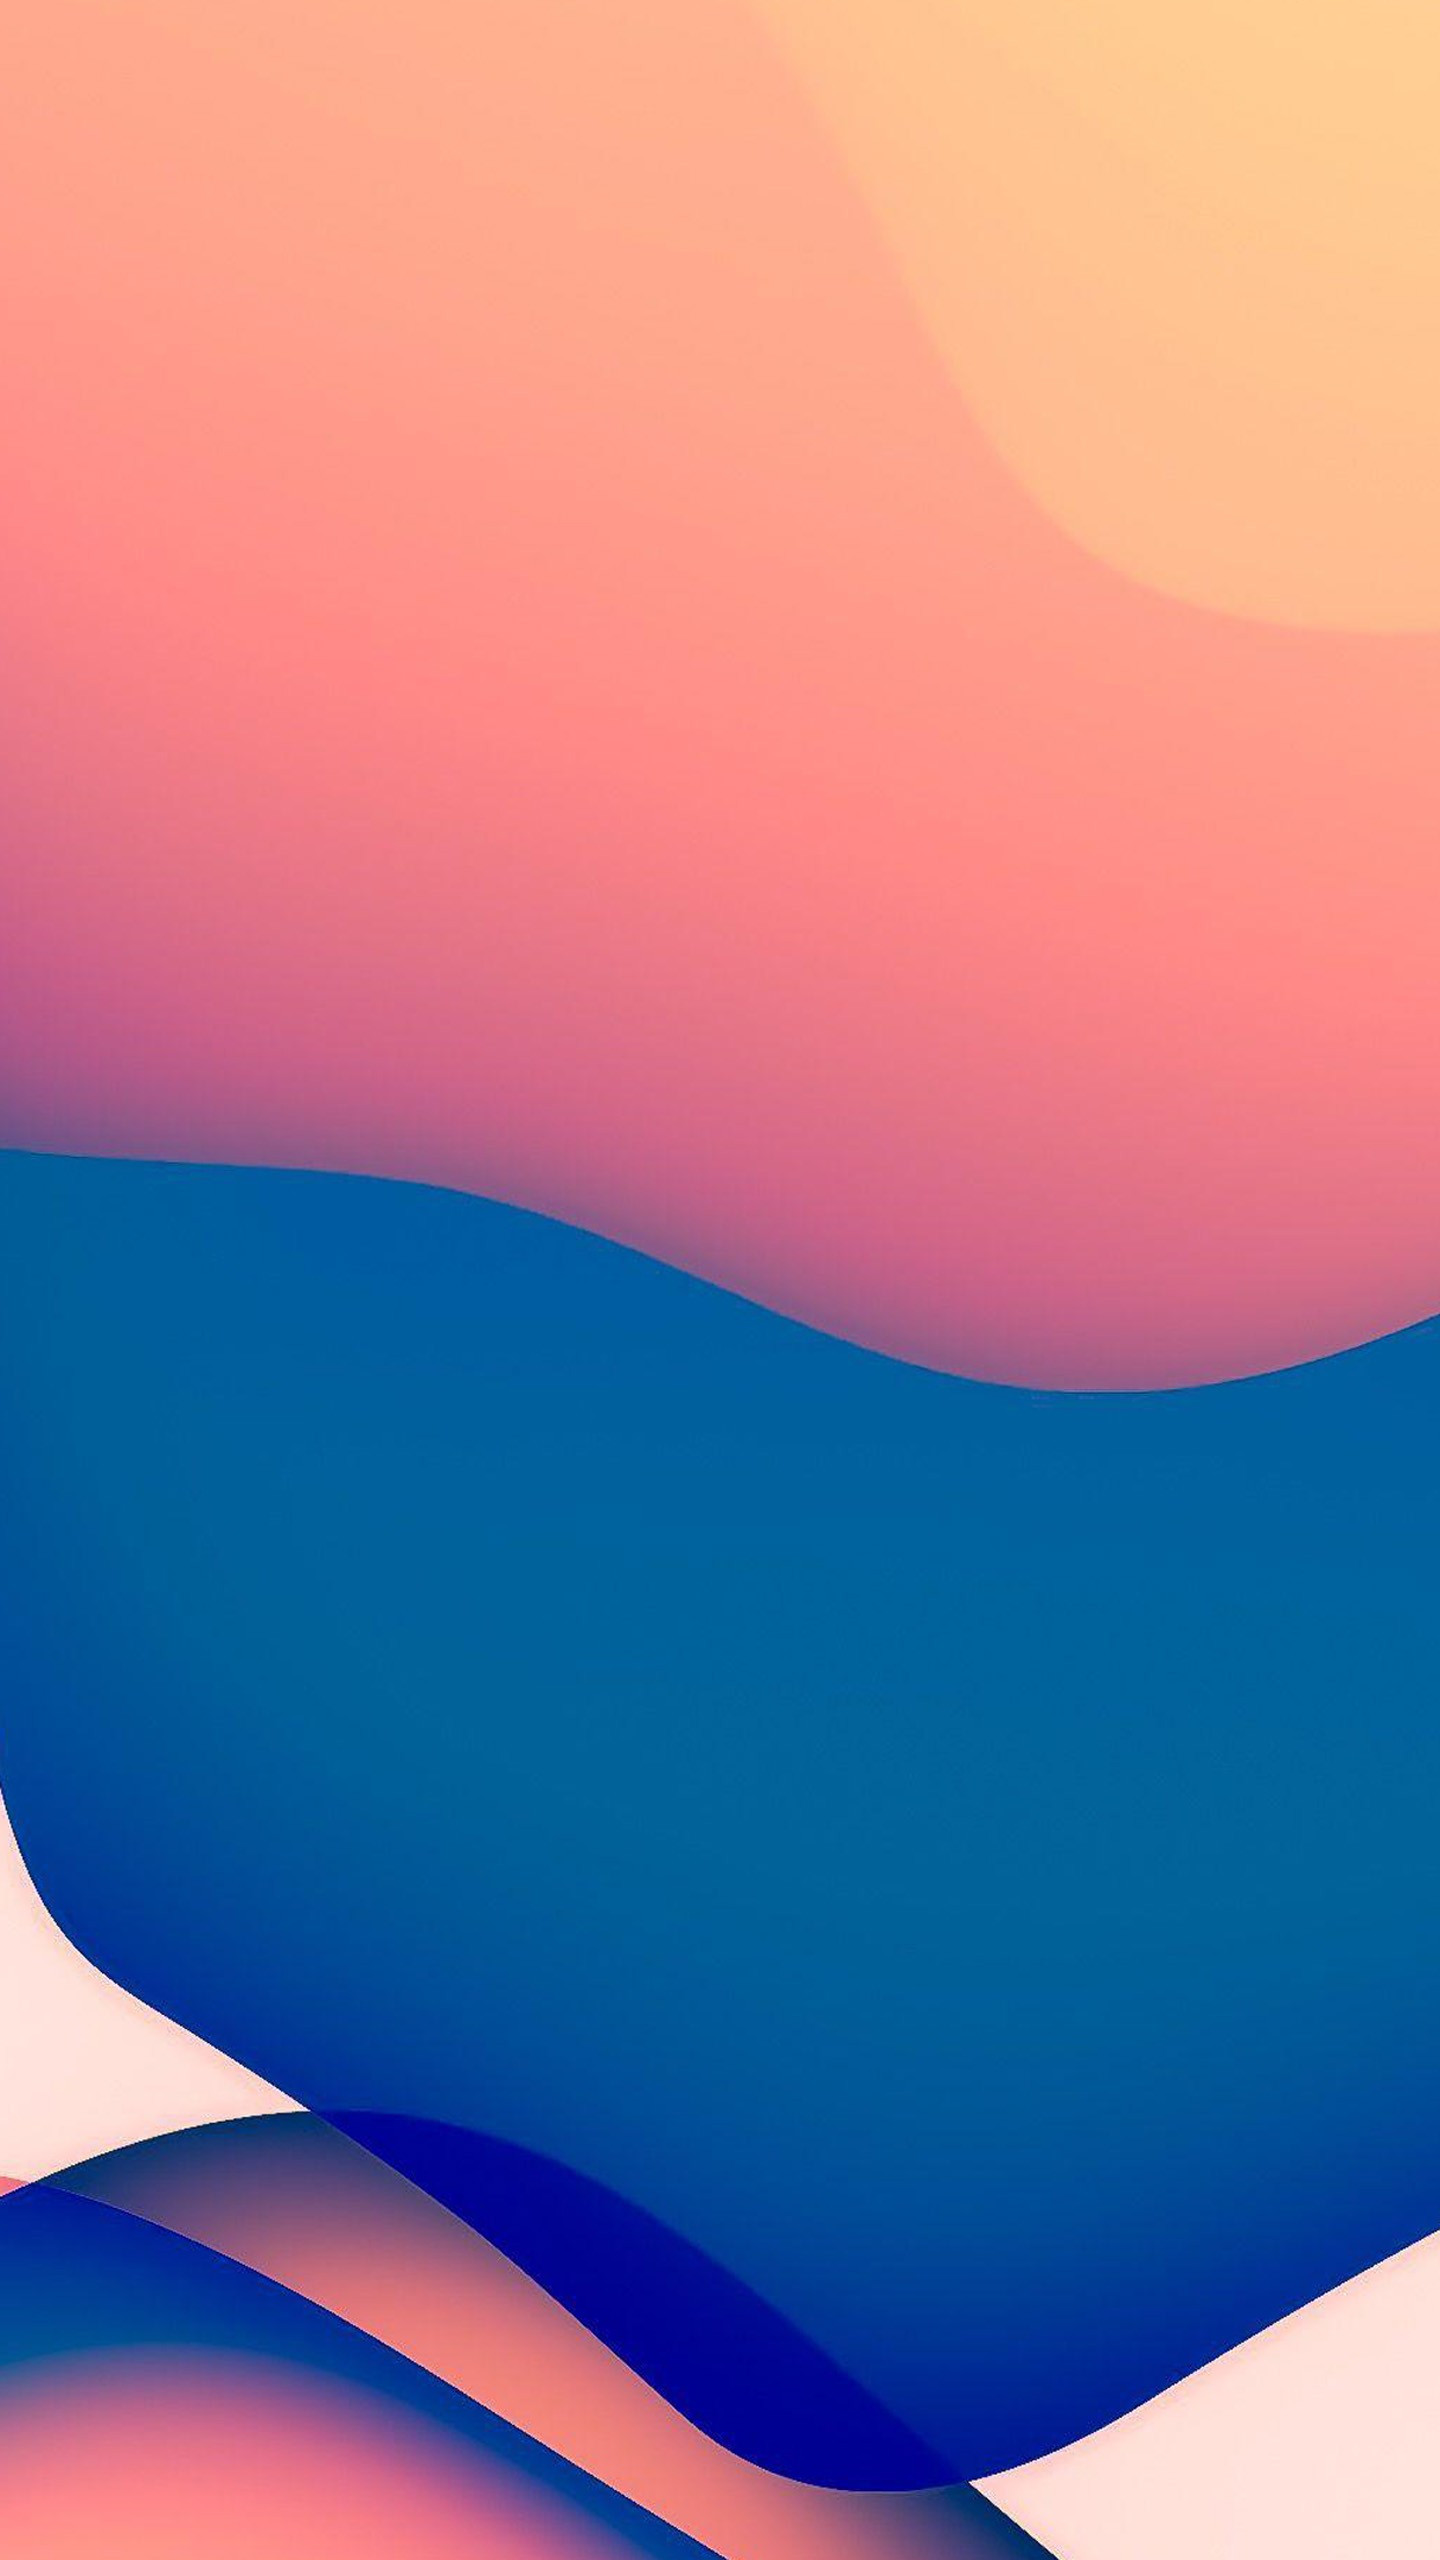 ios 14 wwdc 2020 iphone 12 ipados blue with light orange stock 4k hd abstract wallpapers